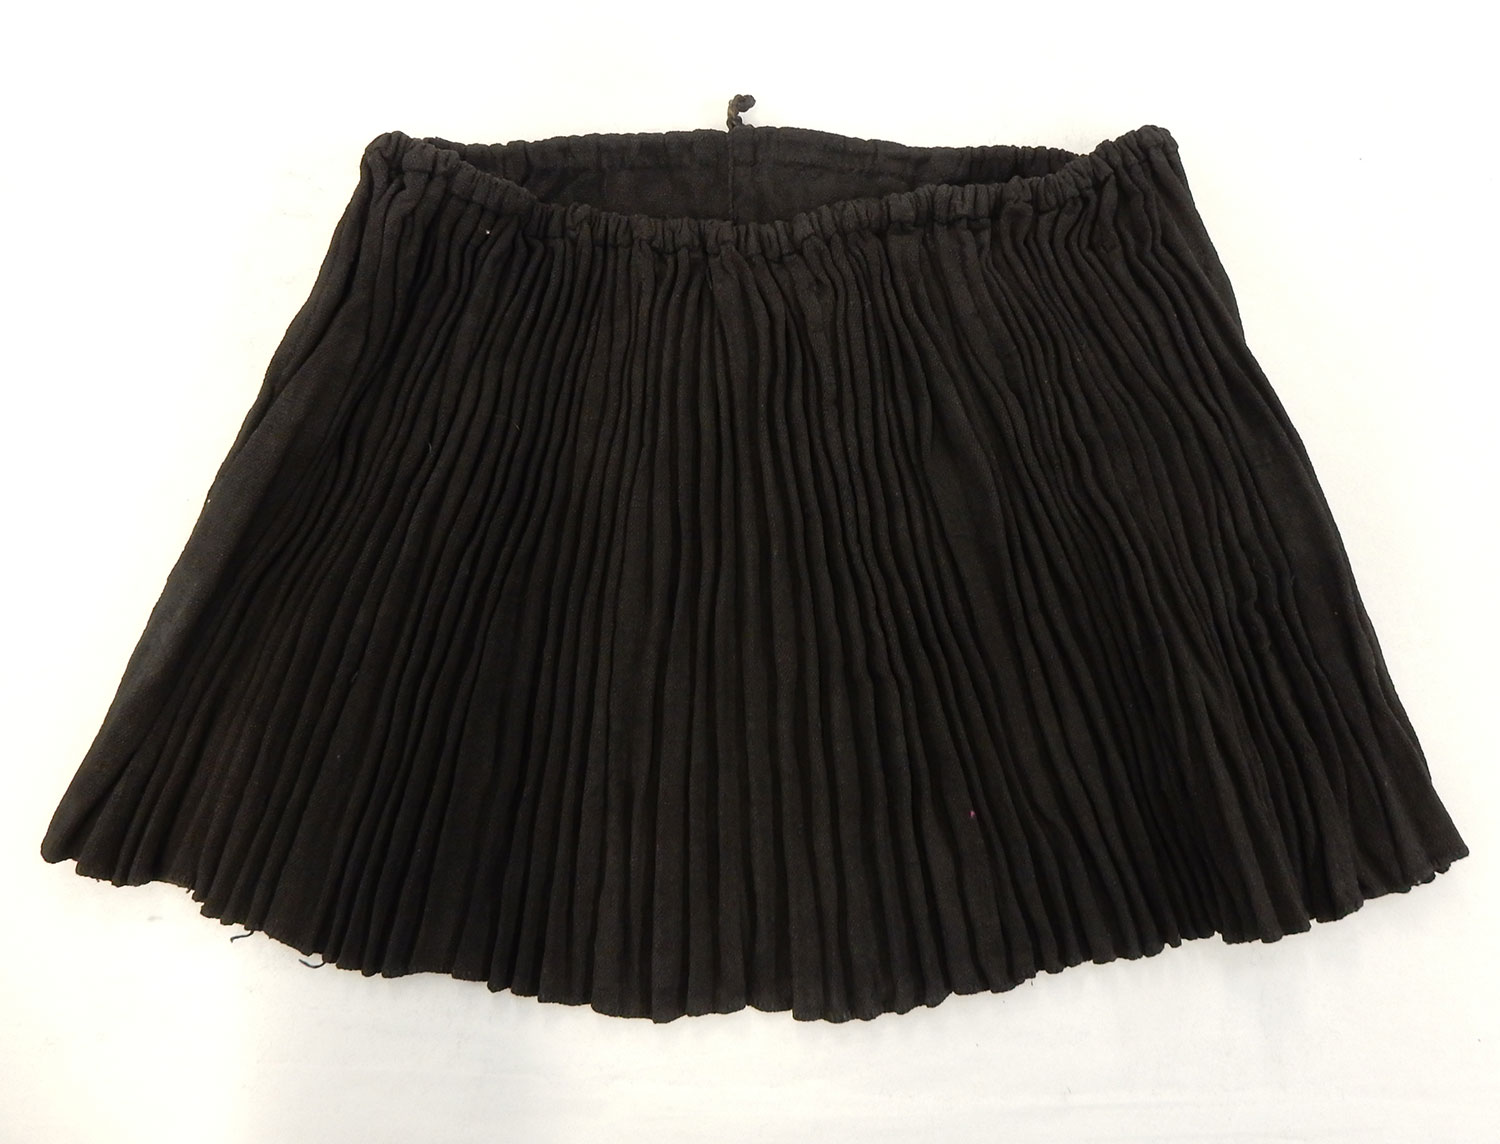 Woman's black cotton pleated skirt: May Wilson collection. Museum reference A.1984.596.1.